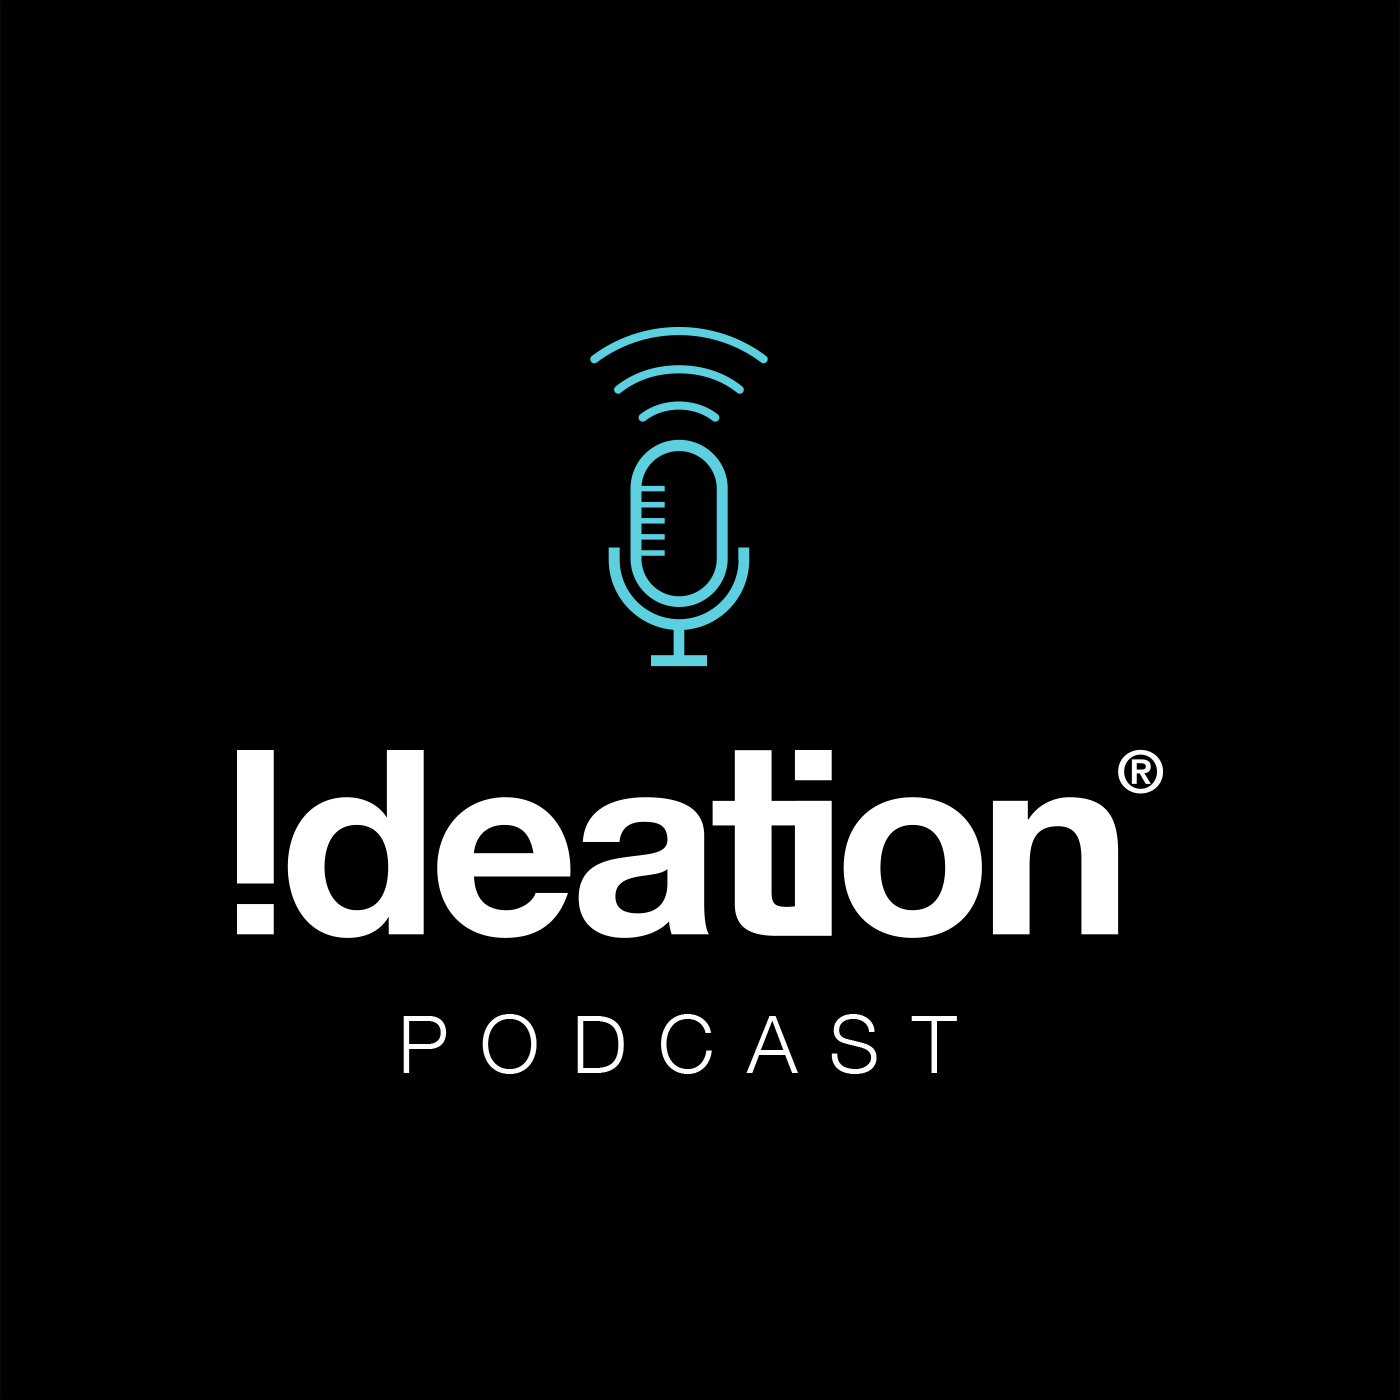 Ideation Podcast show art